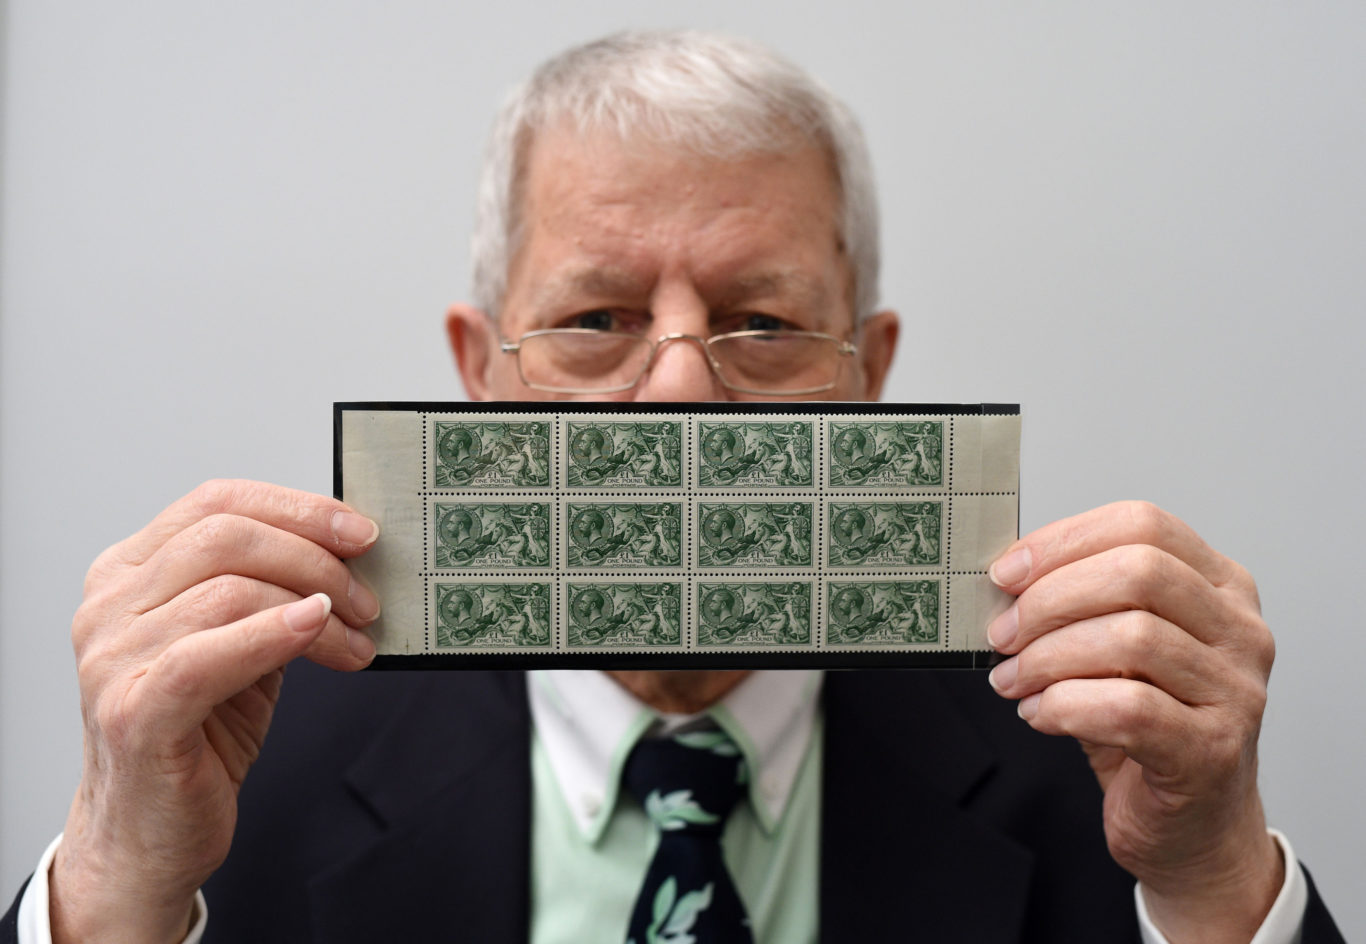 collection of twelve SG 403 £1 green stamps, 1913 Waterlow Printing seahorse issue, worth £125,000 (Kirsty O'Connor/PA)